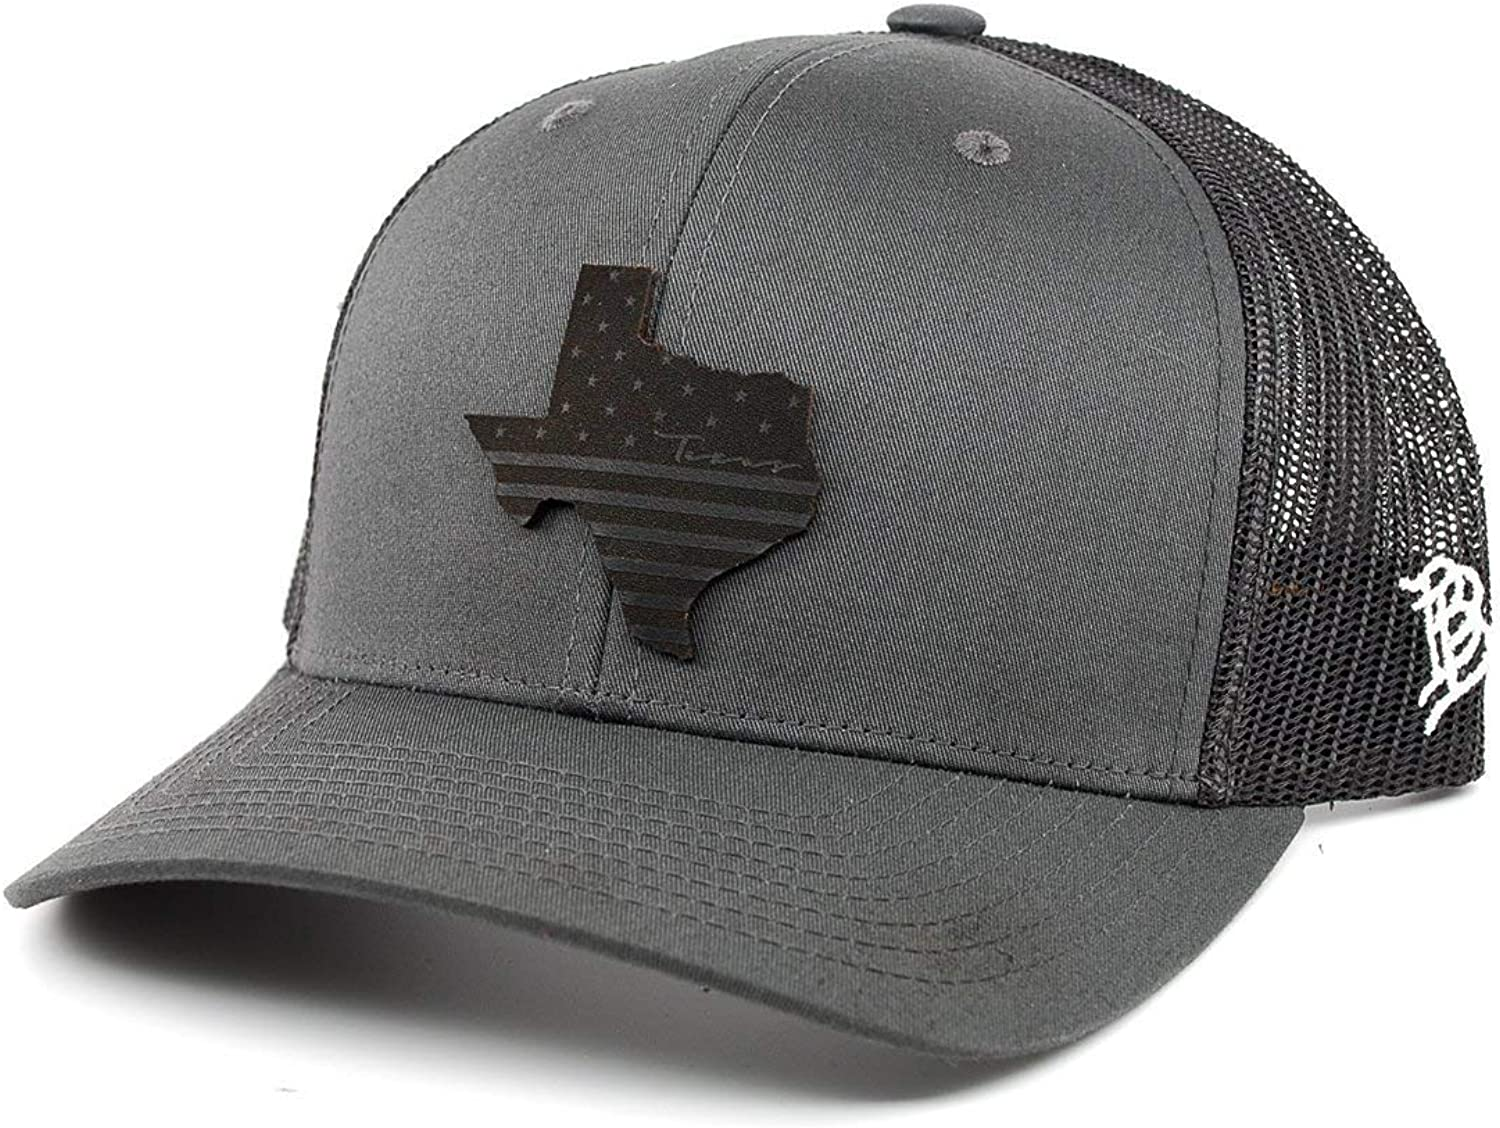 Branded Bills 'Midnight Texas Patriot' Black Leather Patch Hat Curved Trucker